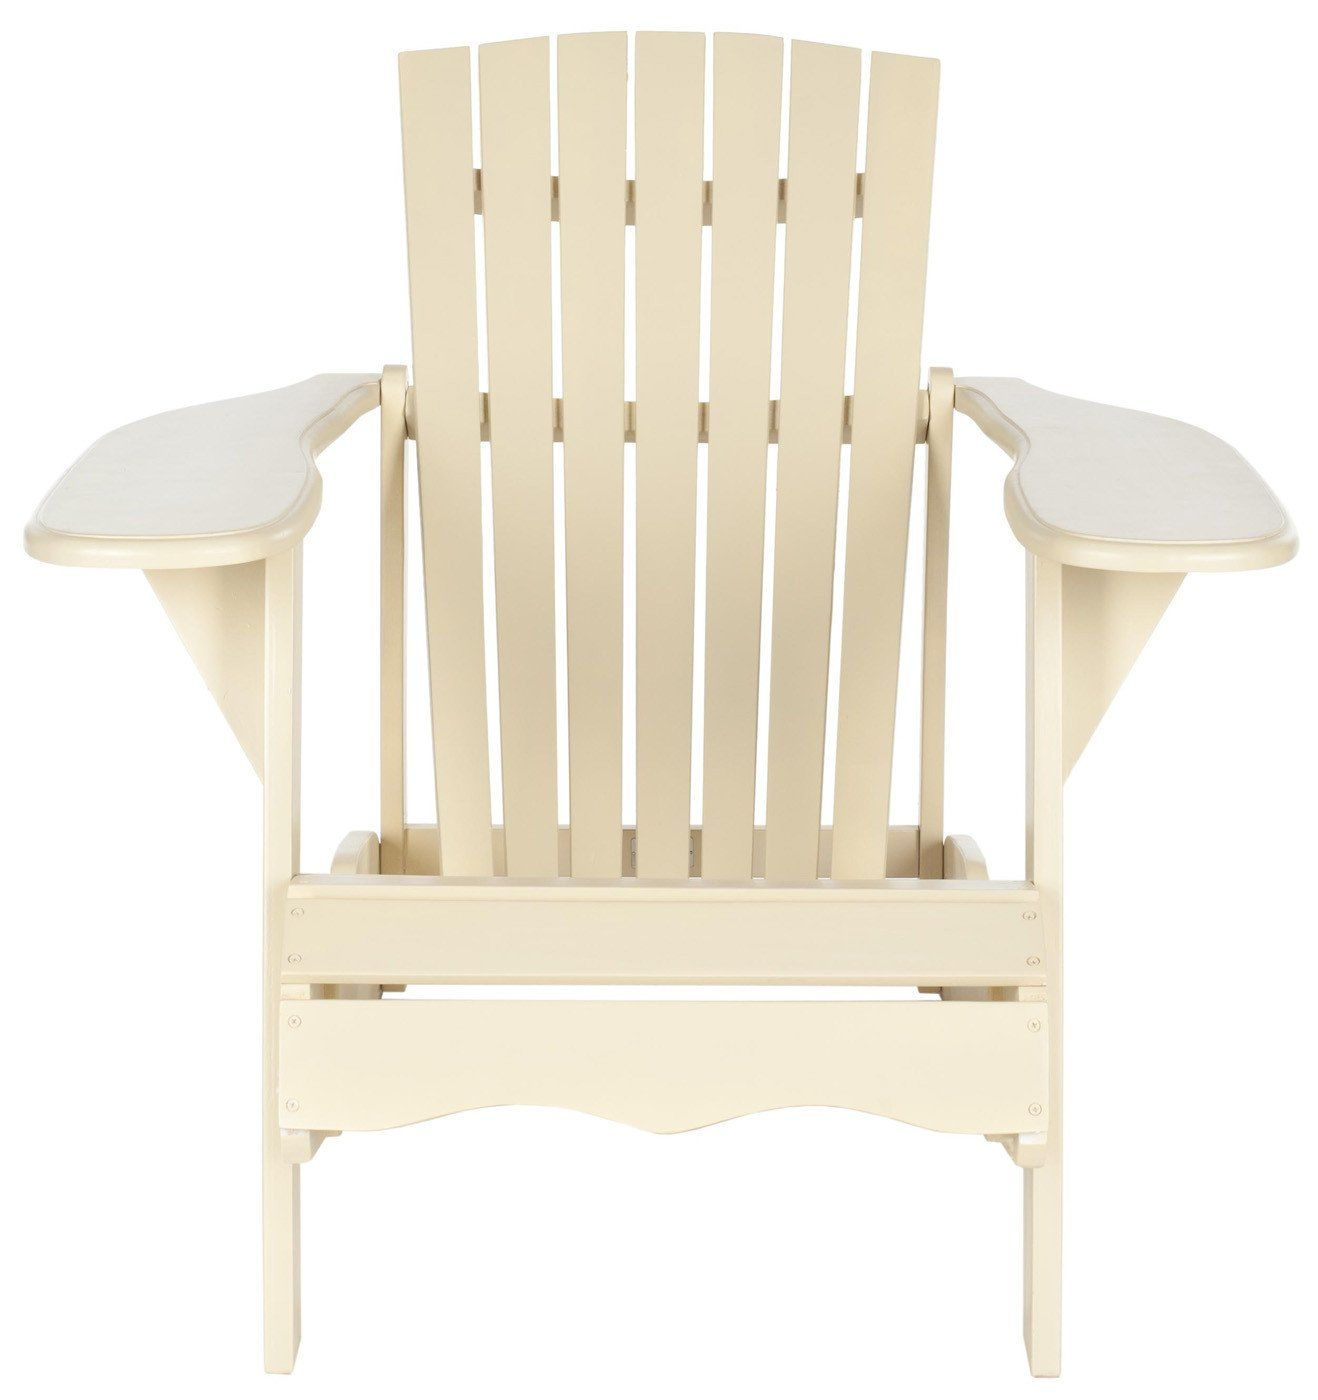 Mopani Adirondack Chair Off White Outdoor Armchair ...